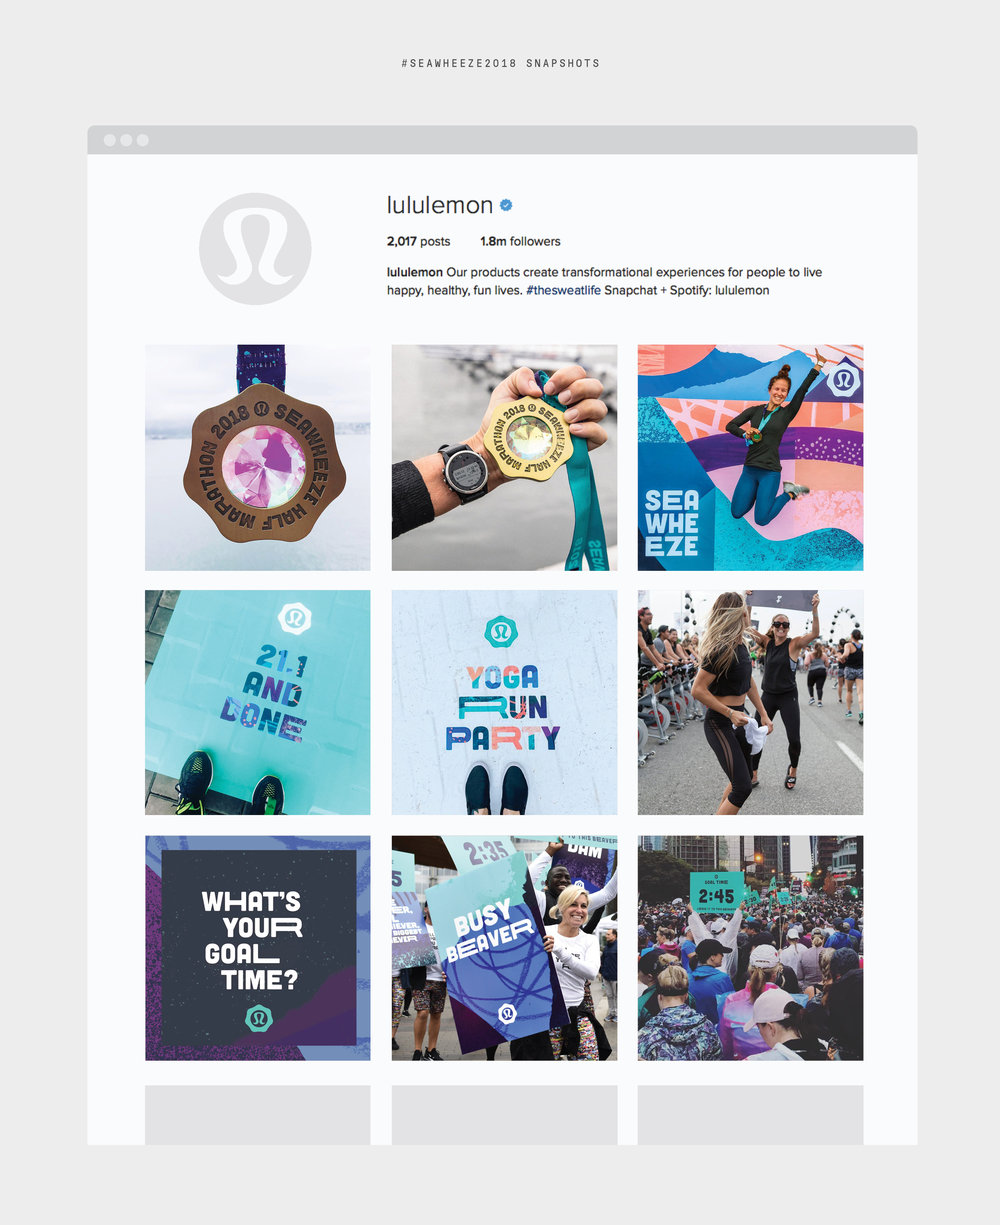 Lululemon SeaWheeze 2018 Half Marathon Branding: #seawheeze social media content storytelling on instagram showing event experience.